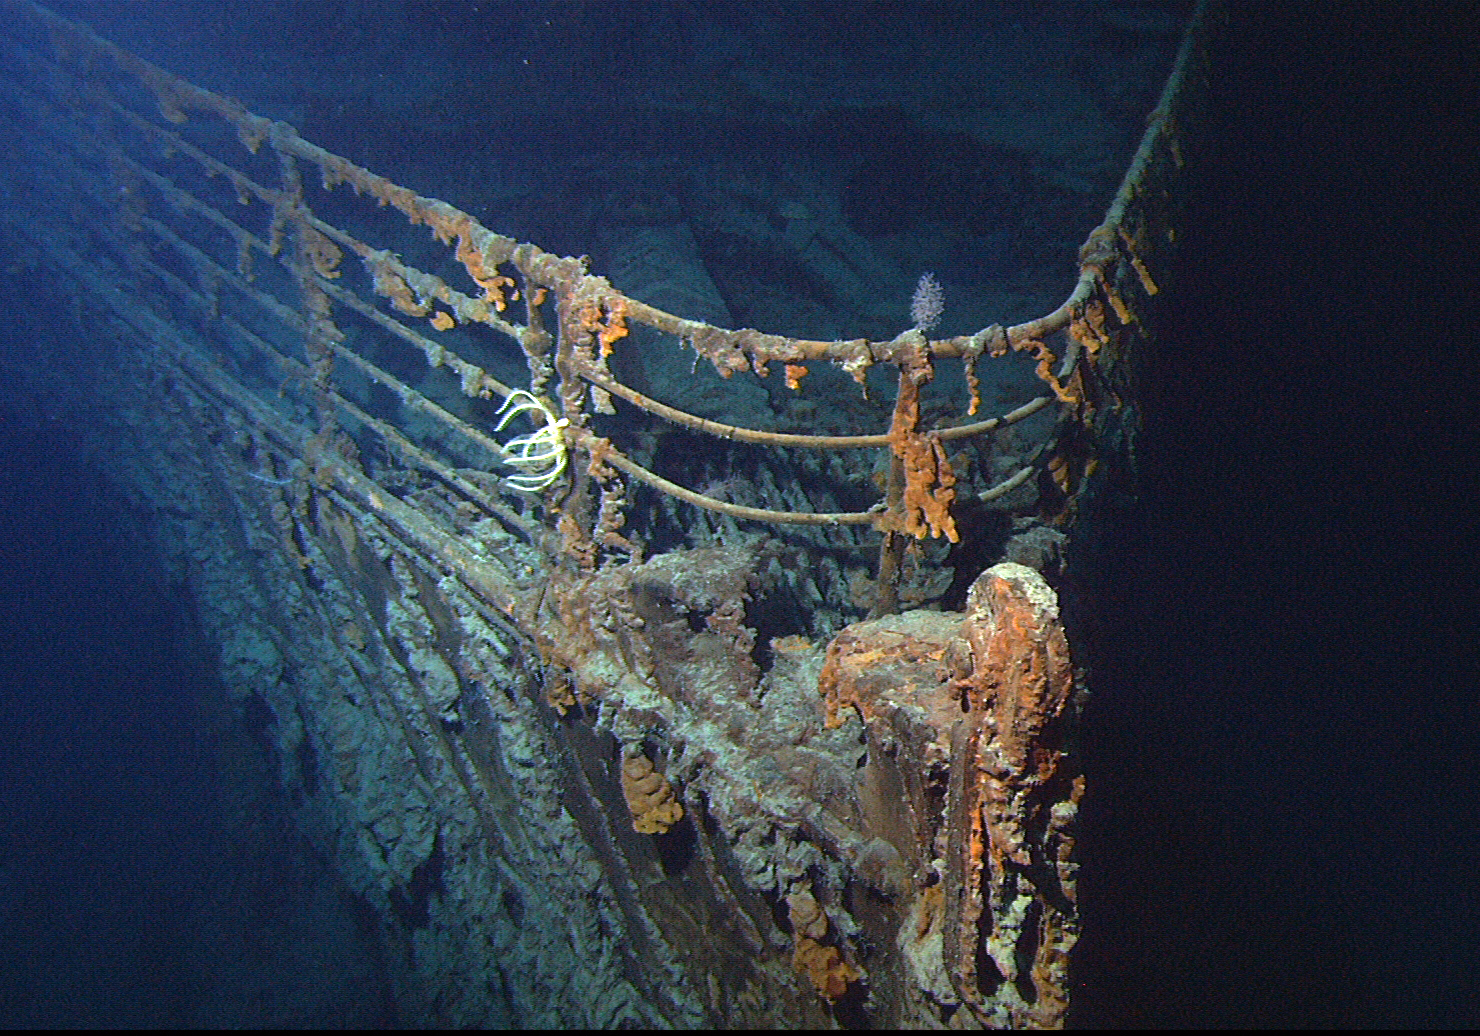 RMS Titanic   Wikipedia The bow of the wrecked RMS Titanic  photographed in June 2004